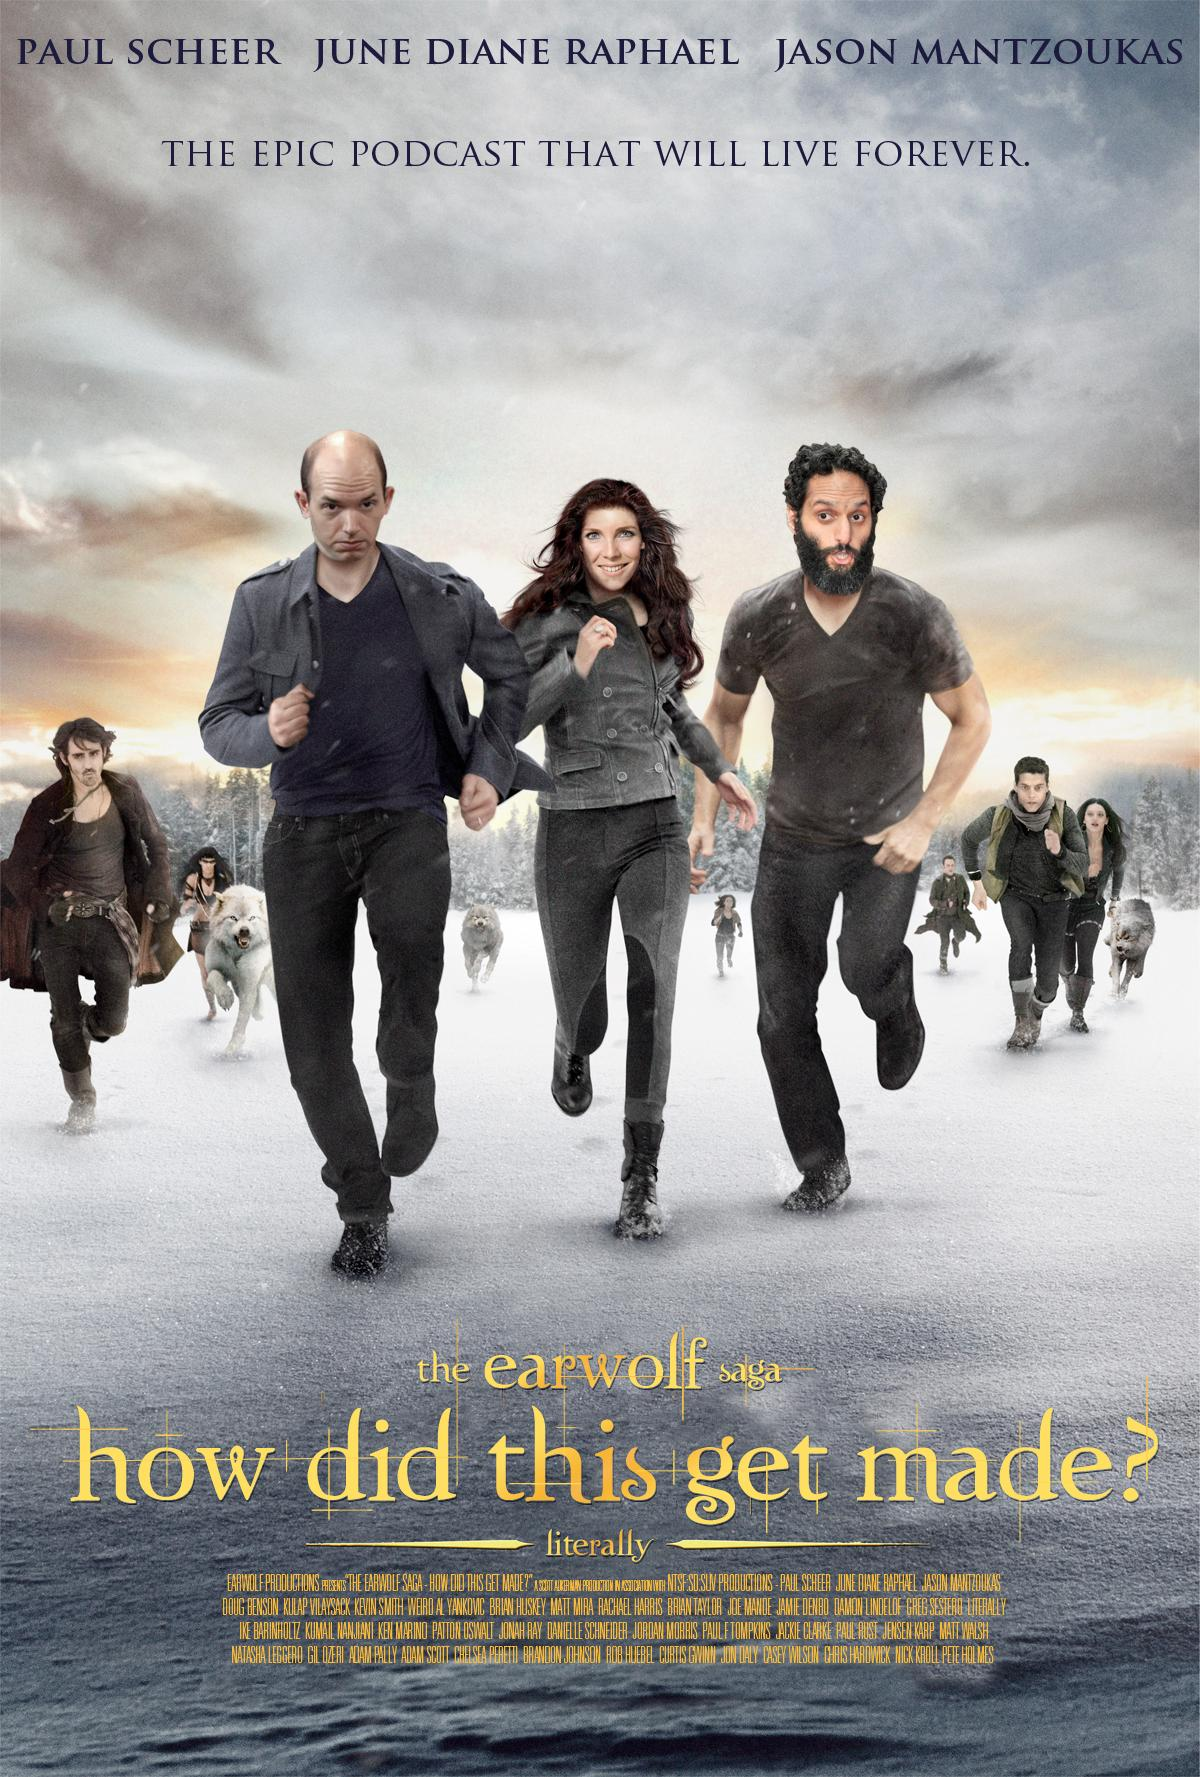 paulscheer: Ep. 50 - TWILIGHT: BREAKING DAWN Part 2 w/ Doug Benson Finally, the Twilight saga has come to an end and Doug Benson is back to help wrap up Twilight: Breaking Dawn – Part 2! We cover everything from the CGI baby, numerous decapitations, and vampire stereotypes. We also talk about why Jacob is literally the worst, how the movie becomes a pale version of X-Men, and the insane plot twist. Which part of the movie did Jason cry at? You'll have to listen to find out! LISTEN NOW ALSO THE MOVIES FOR THE LIVE NYC SHOWS AT THE BELLHOUSE ARE…. 8:30PM ANACONDA 10:30PM DEVILS ADVOCATE BOTH SHOWS ARE SOLD OUT! Jay and I were going to watch Skyfall, but after Doug Benson wholeheartedly recommended this movie we took his advice… and holy shit decapitations everywhere. Also, it was worth it just to be the only one in the theater laughing at wolf man's closing credit head turn. Fucking ridiculous. I want a gif of it.